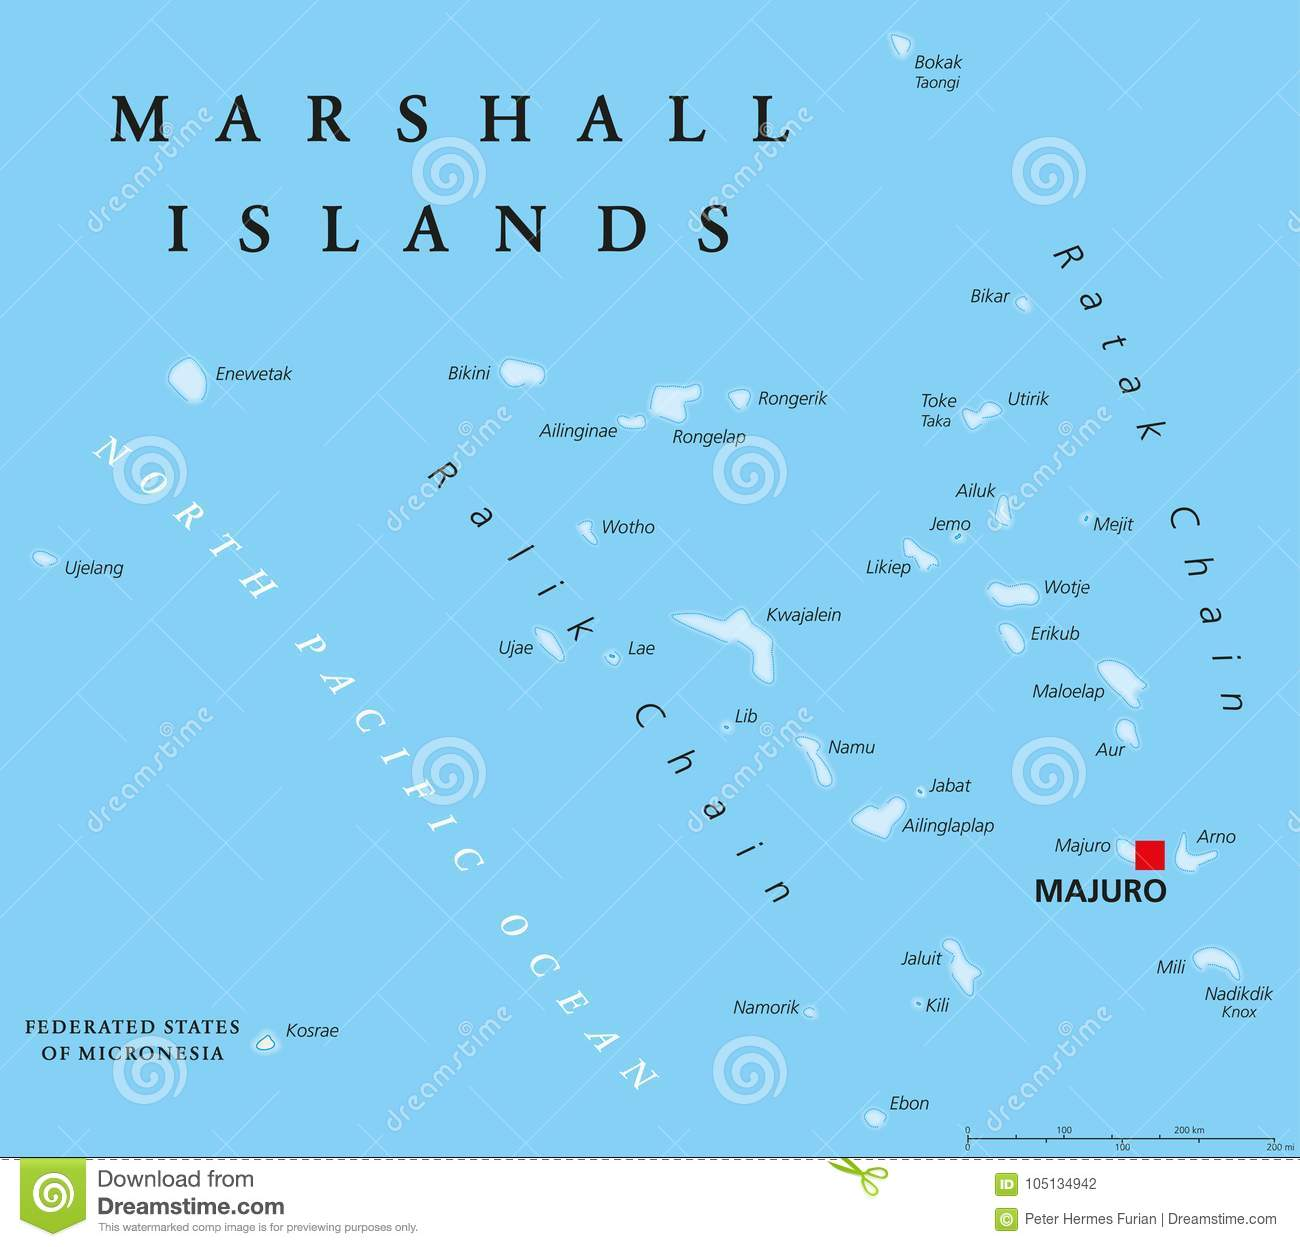 Marshall Islands Political Map Stock Vector - Illustration of ...